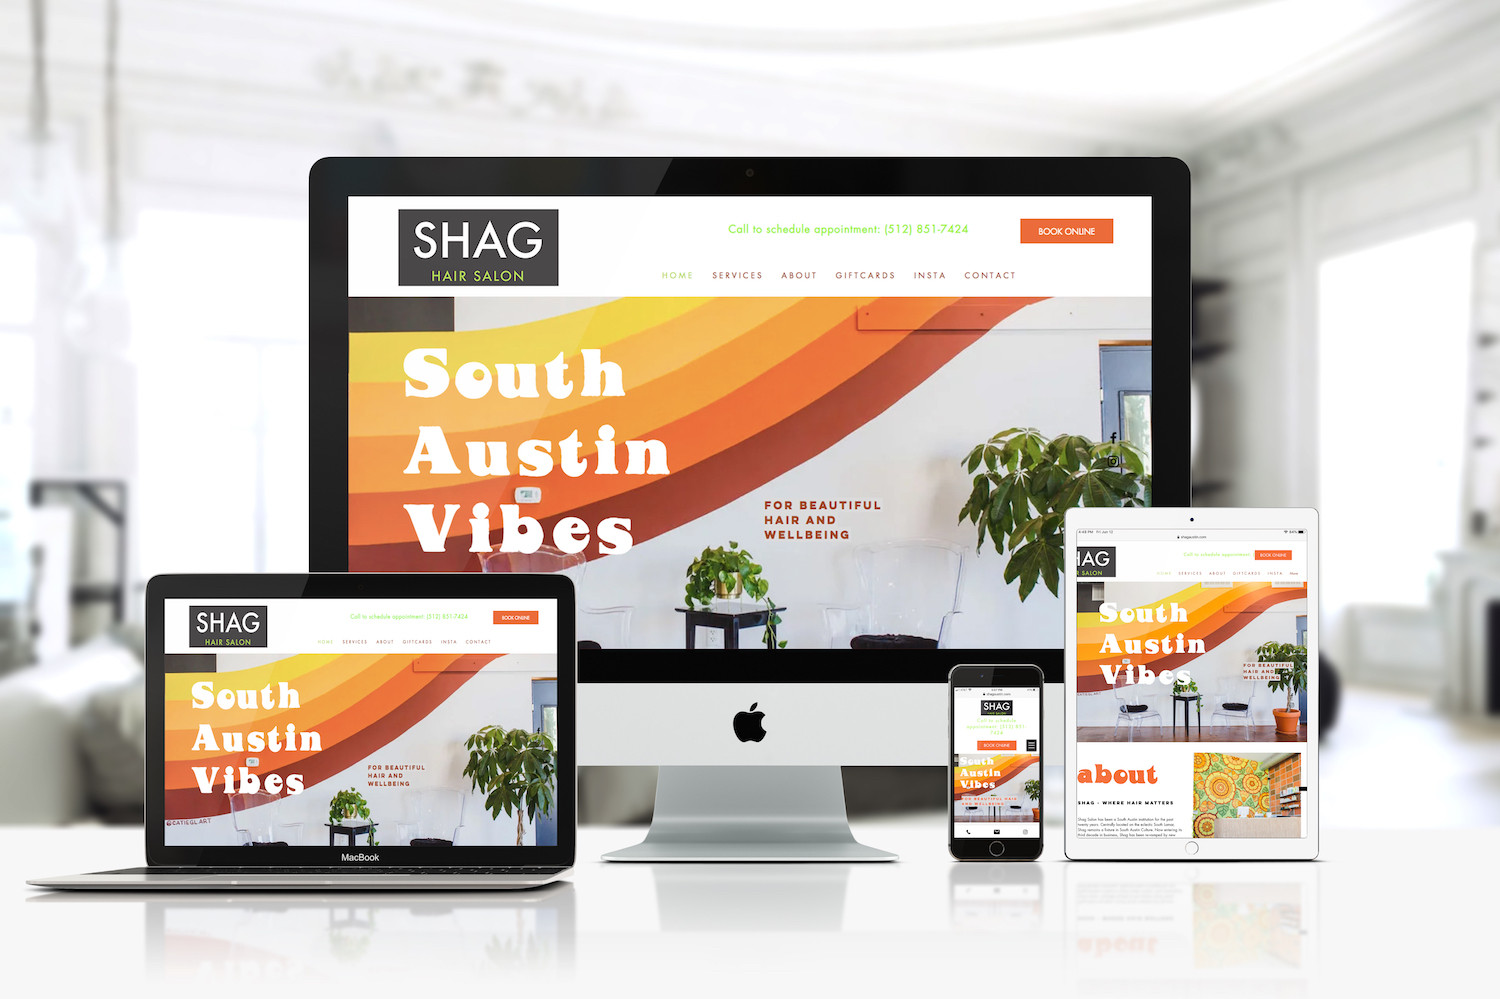 An Austin institution, SHAG Salon switched ownership, and with it came a complete rebranding. The new owners wanted to pay homage to the retro vibe of the building. Located on trendy South Lamar in Austin, SHAG Salon went bold in colors and look to reflect the 1970ies area feel the brand has. The website we build for them reflects that feel with bold colors, fonts, and overall design.